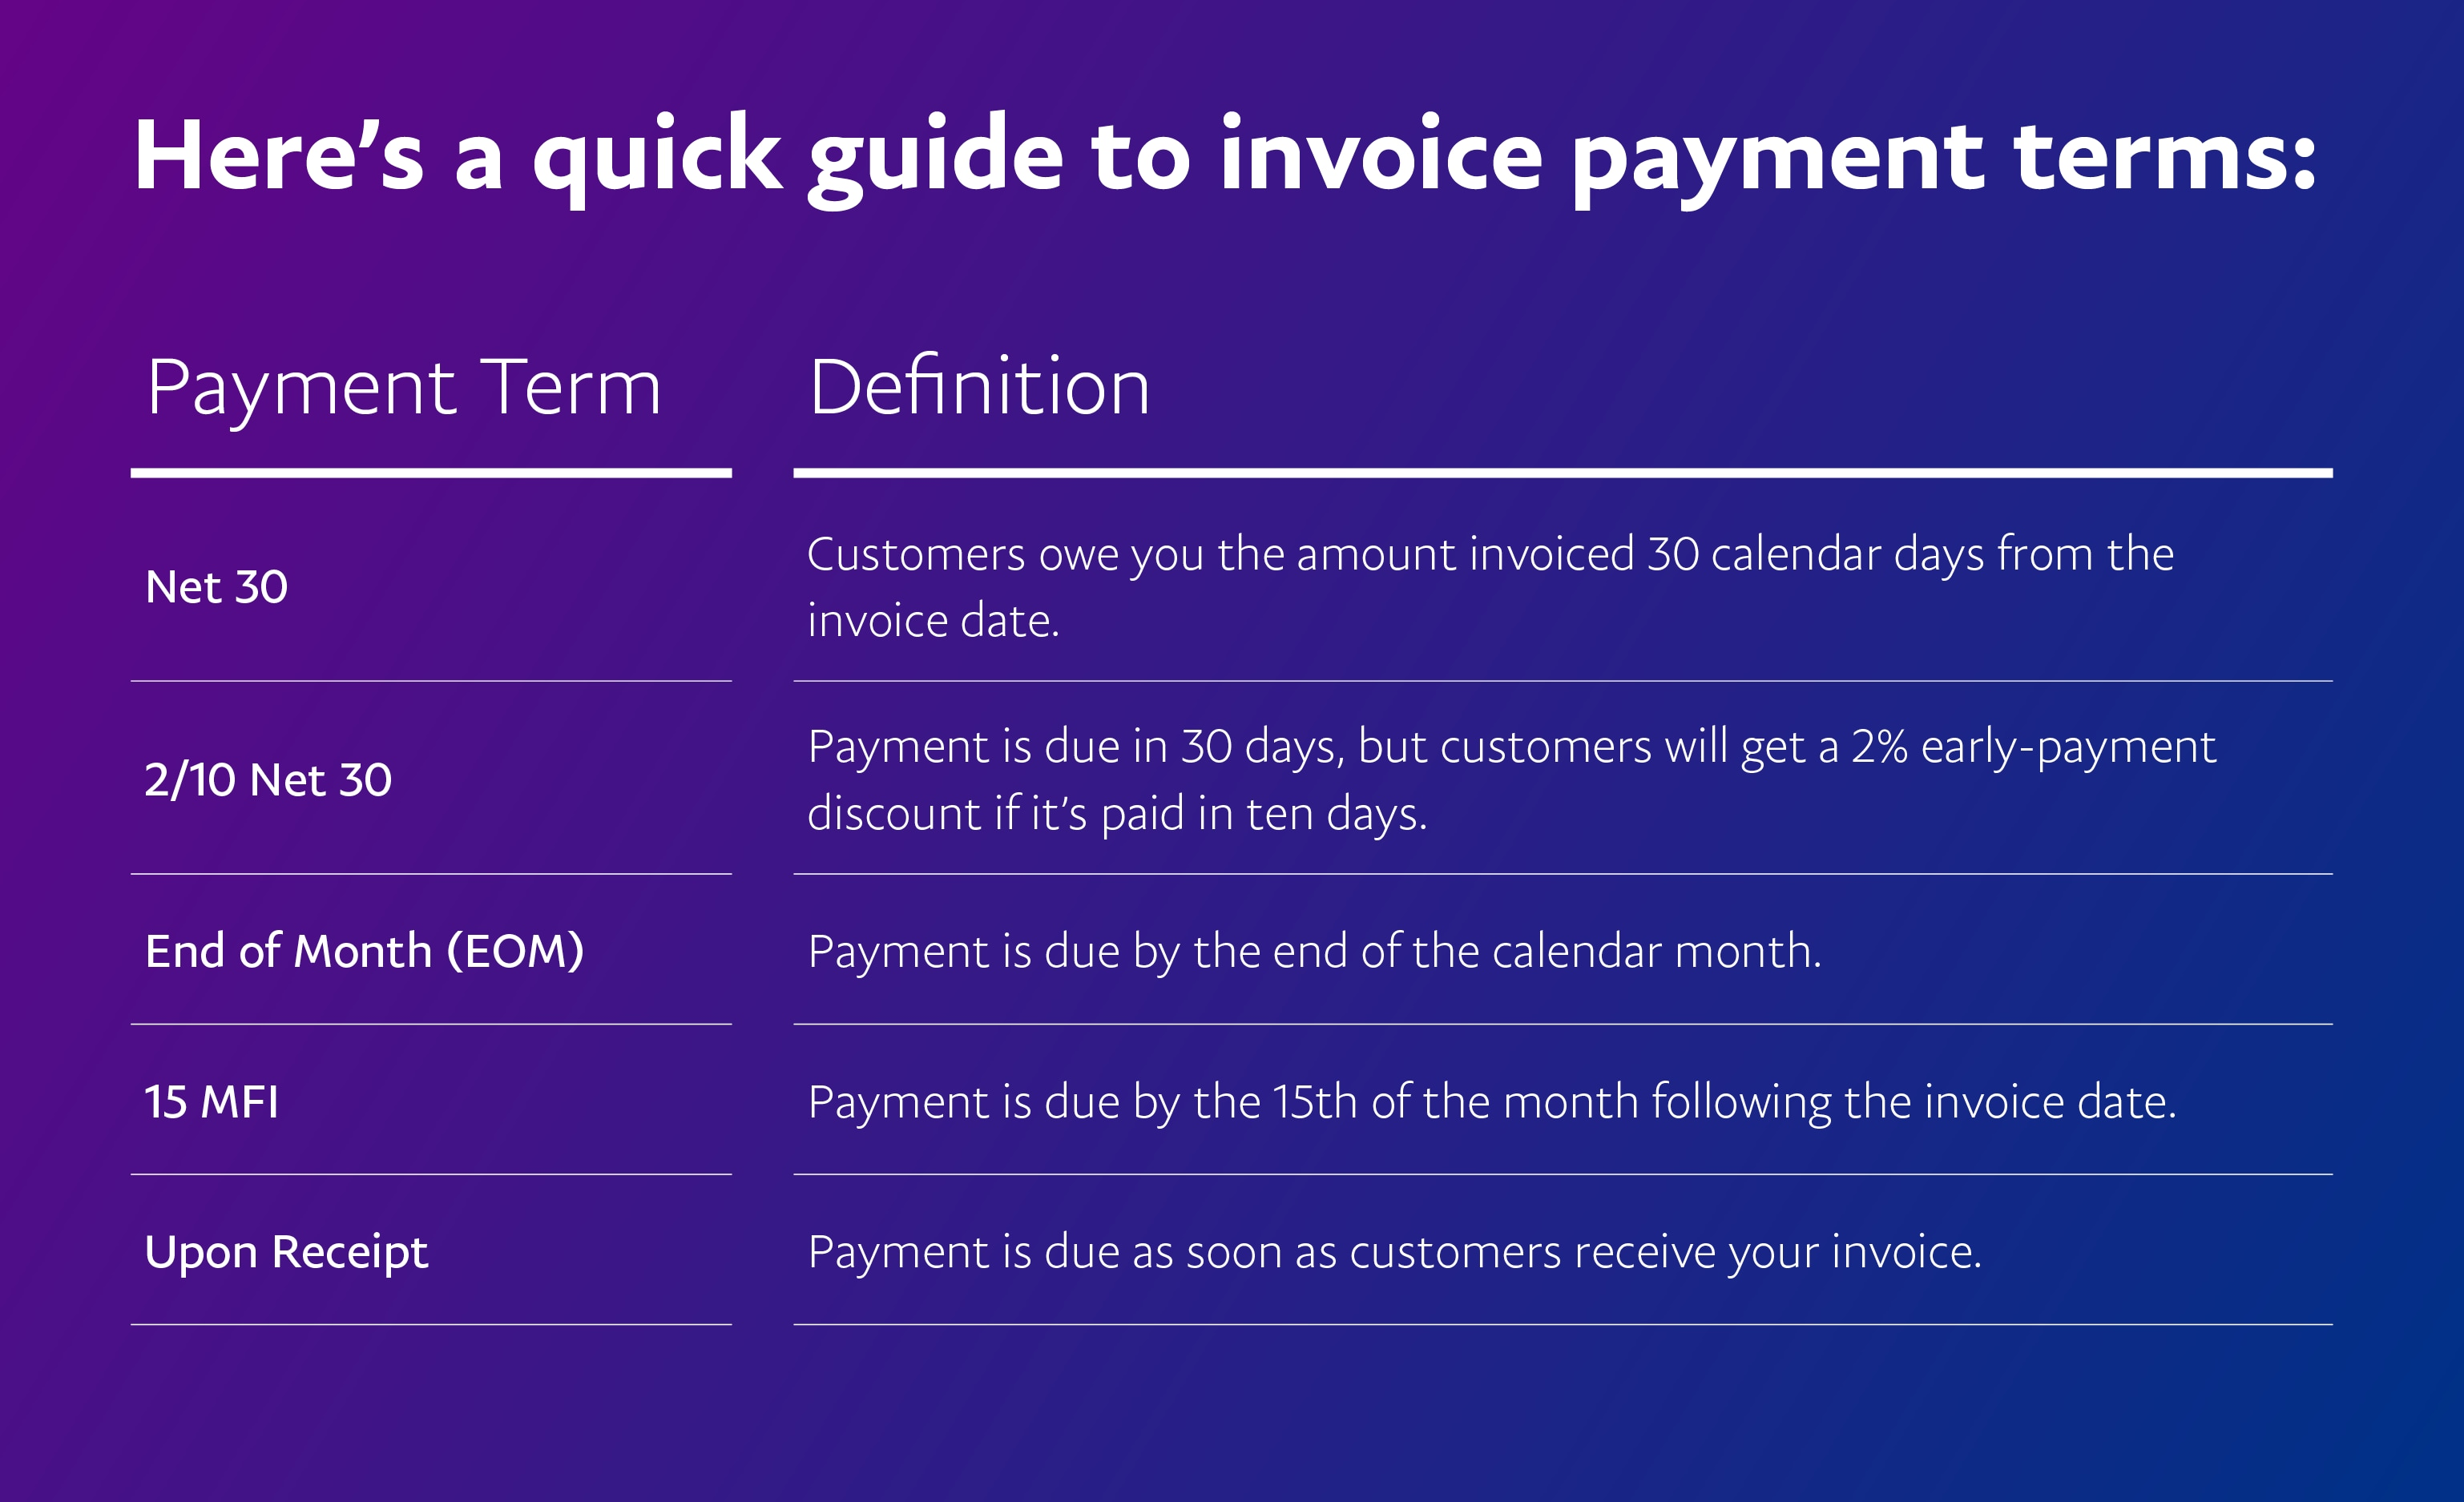 A Quick Guide To Understand Invoice Payment Terms | Paypal